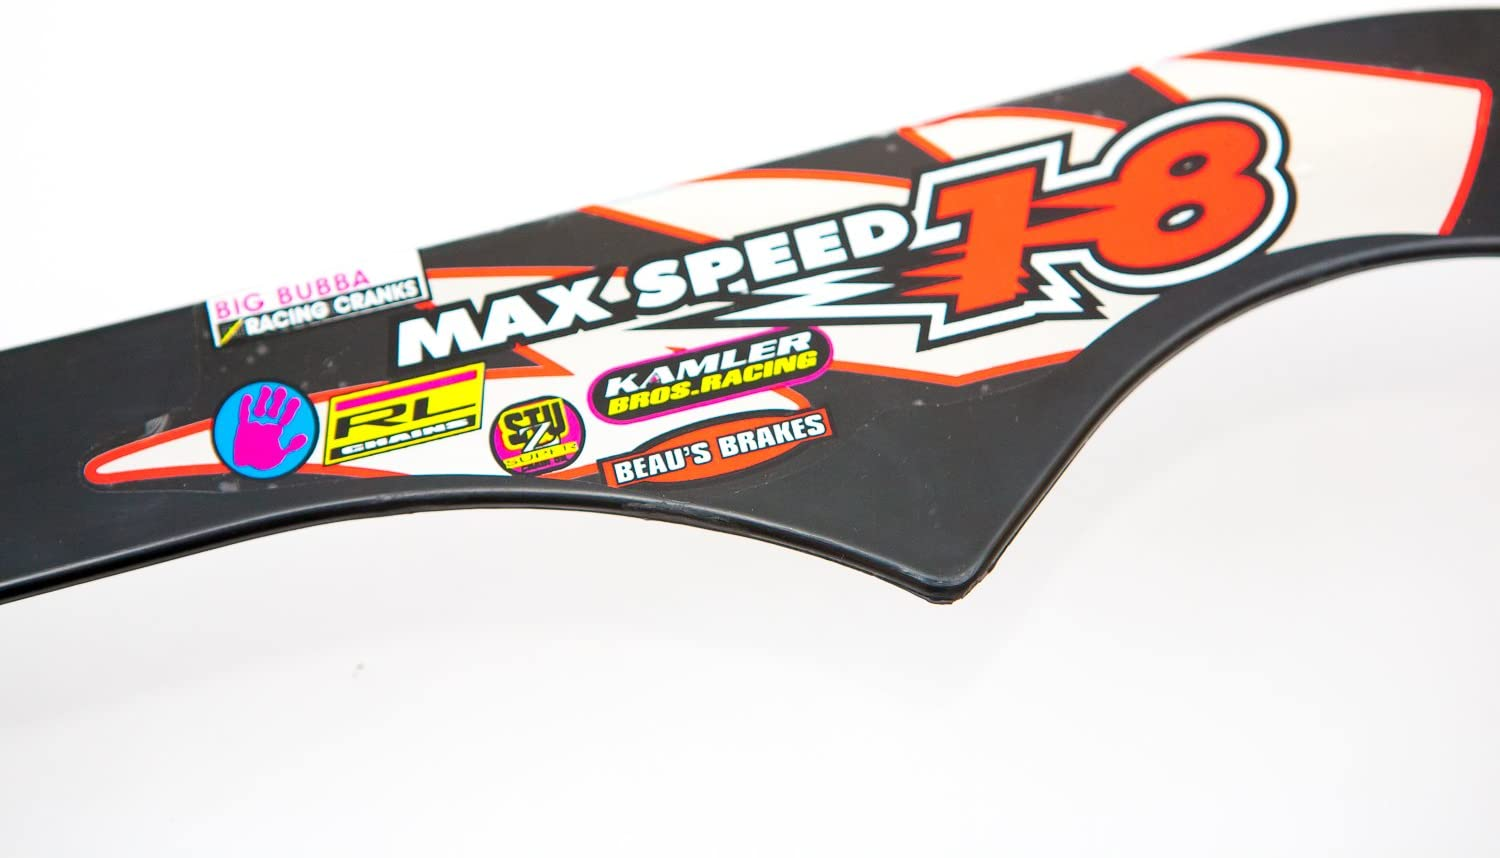 BLACK FireCloud Cycles MAX SPEED 18 KIDS Bike CHAIN GUARD for 12 WHEELS NEON PINK Design NEW